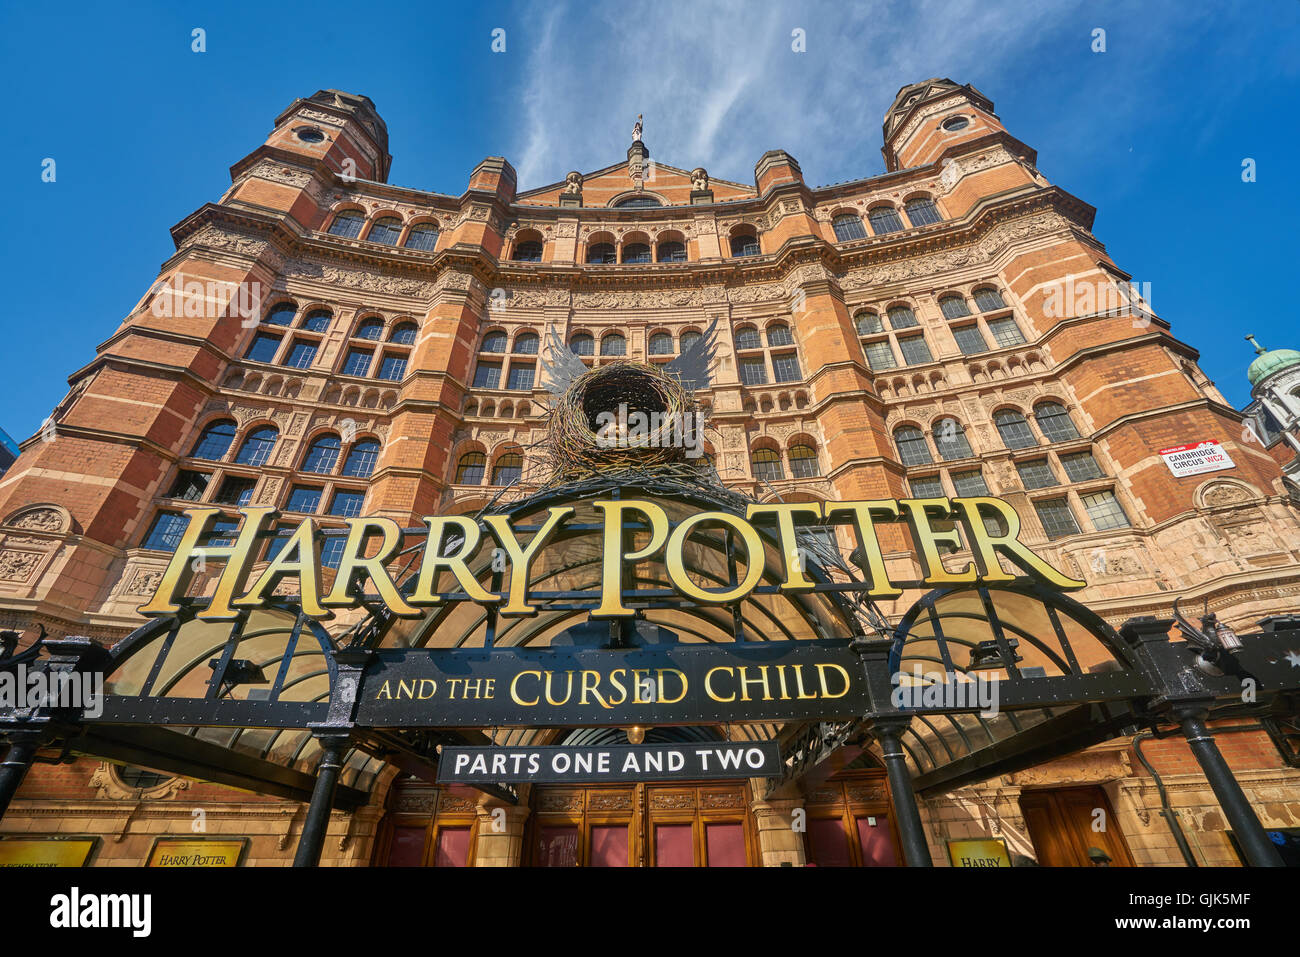 Harry Potter and the Cursed Child.  Palace theatre - Stock Image